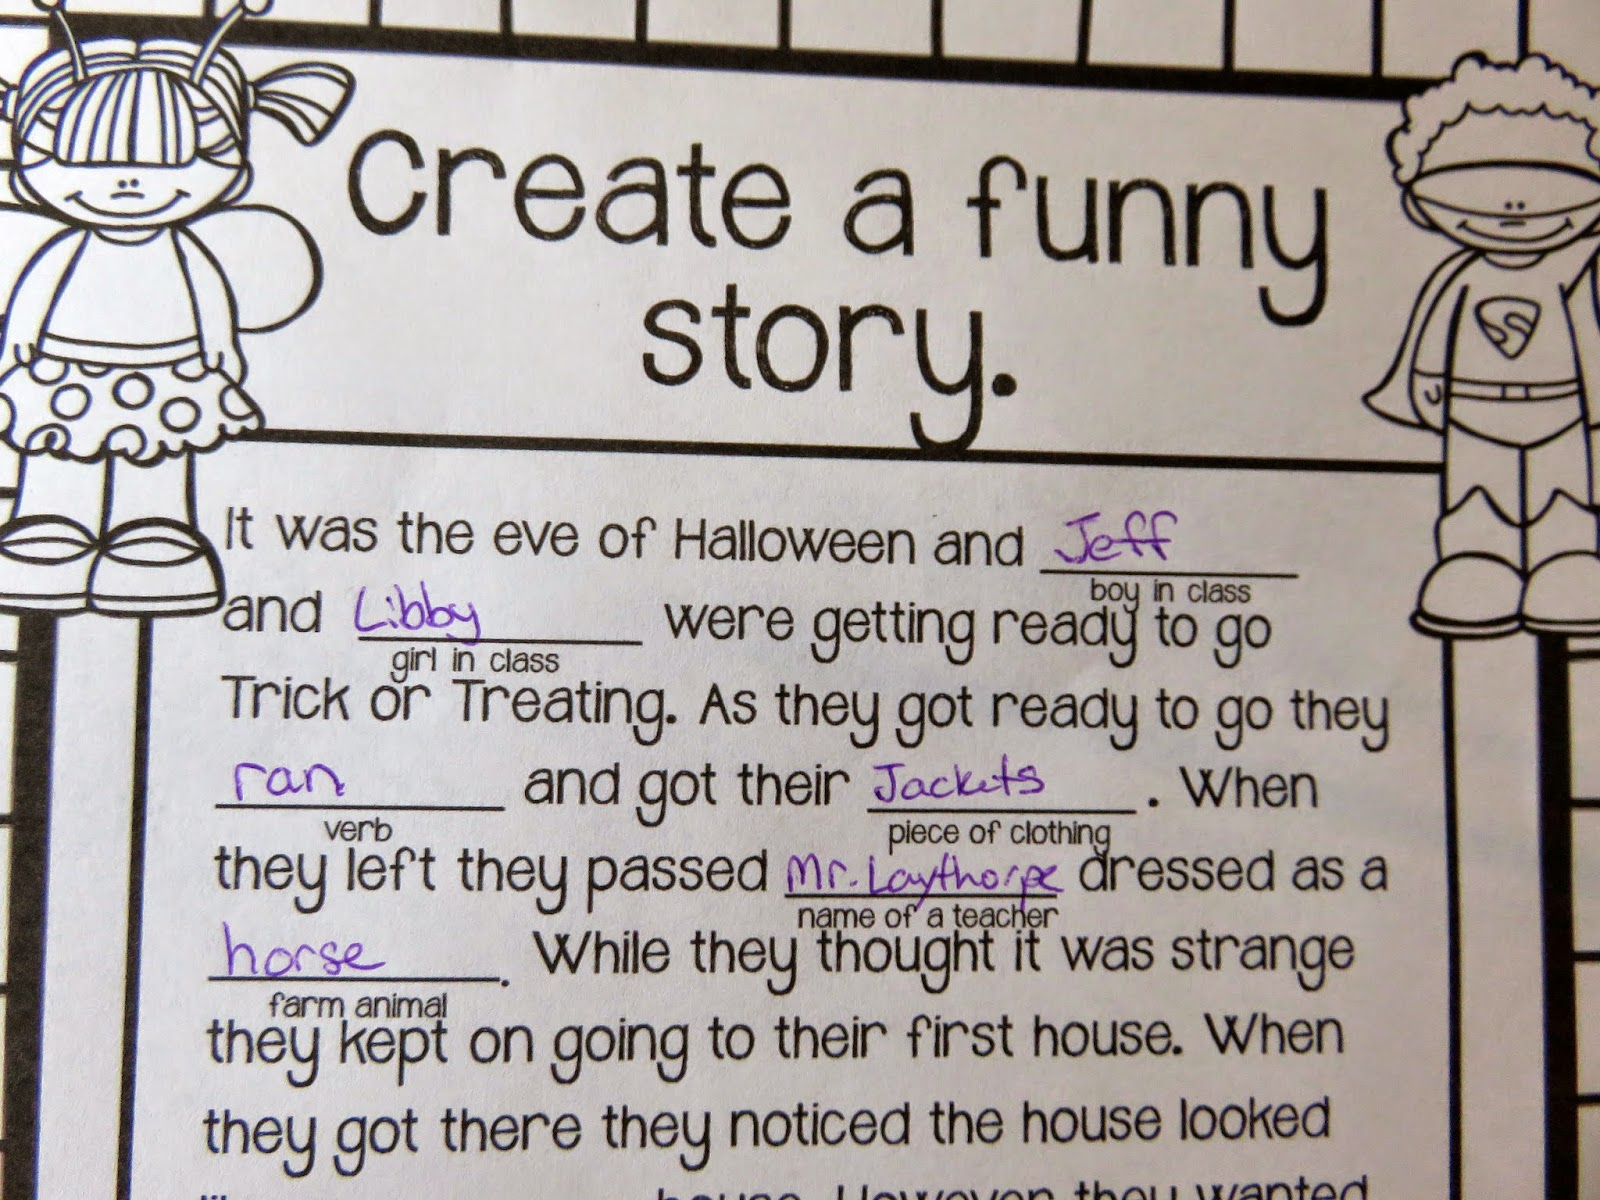 rclassroomsrus 2014 get your reluctant writers off to a great start by creating a fun story about halloween while also incorporating you and some of their classmates as a